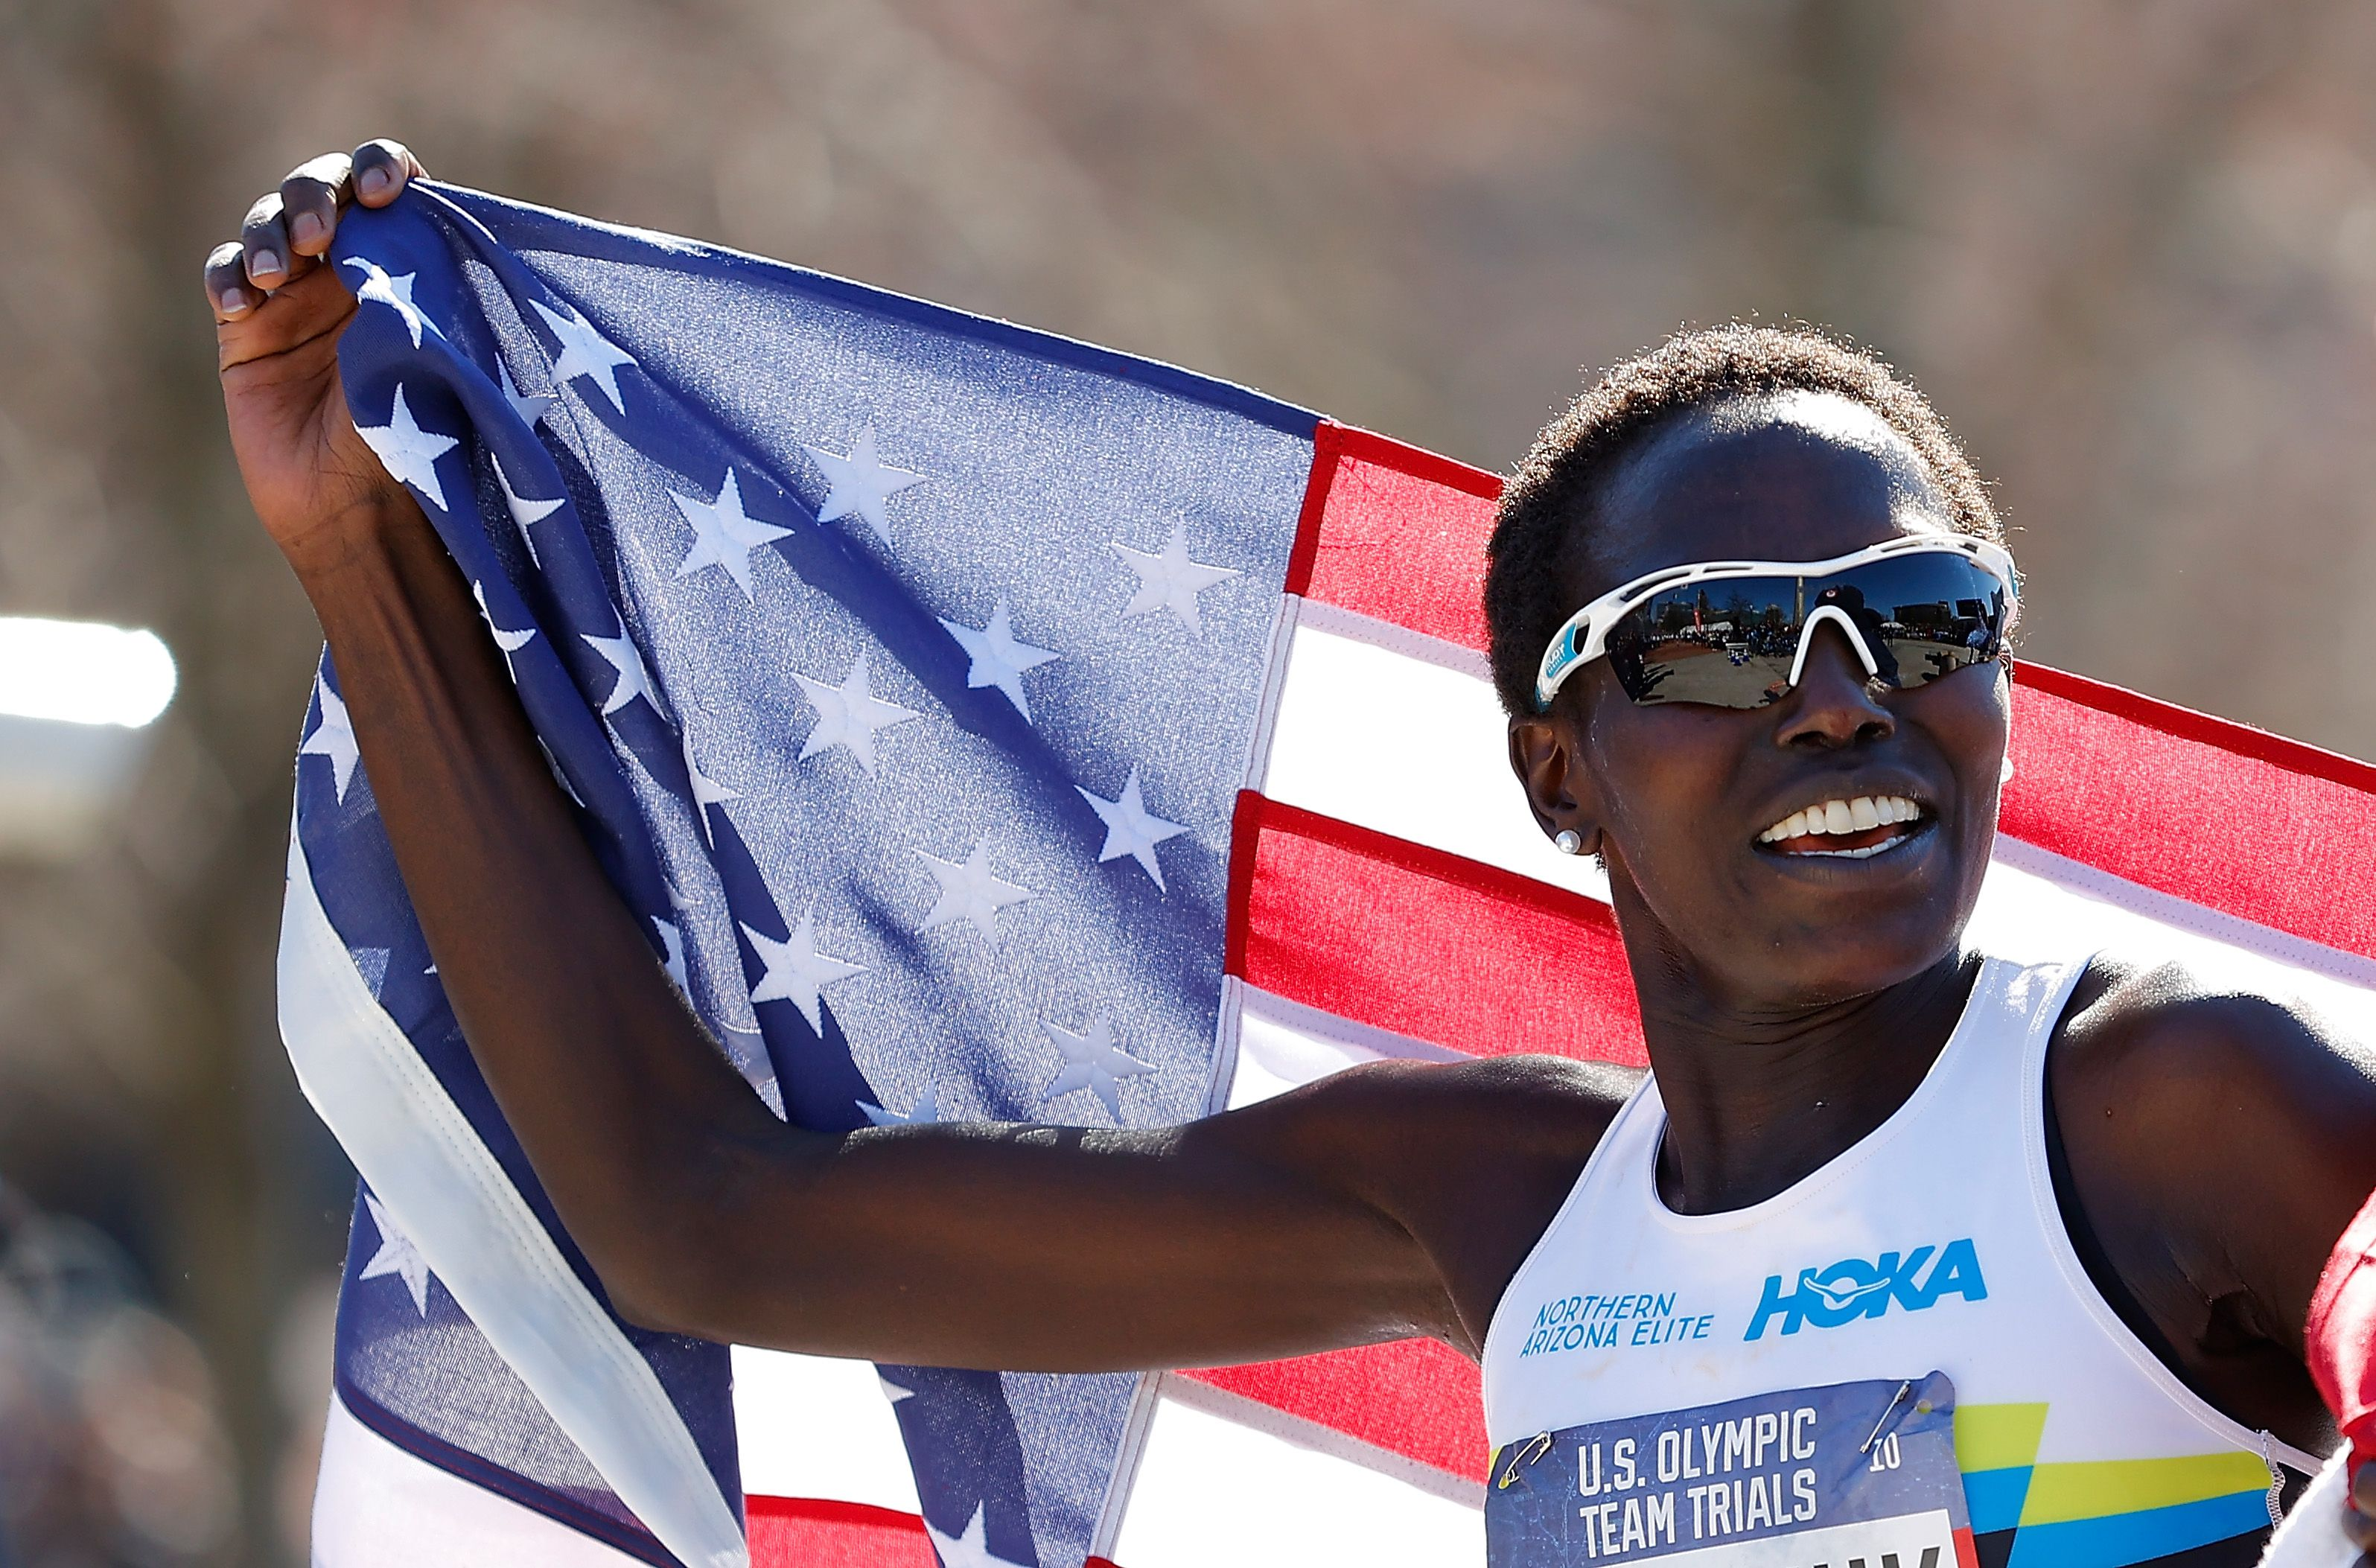 The U.S. Olympic Marathon Team Is Eager to Race